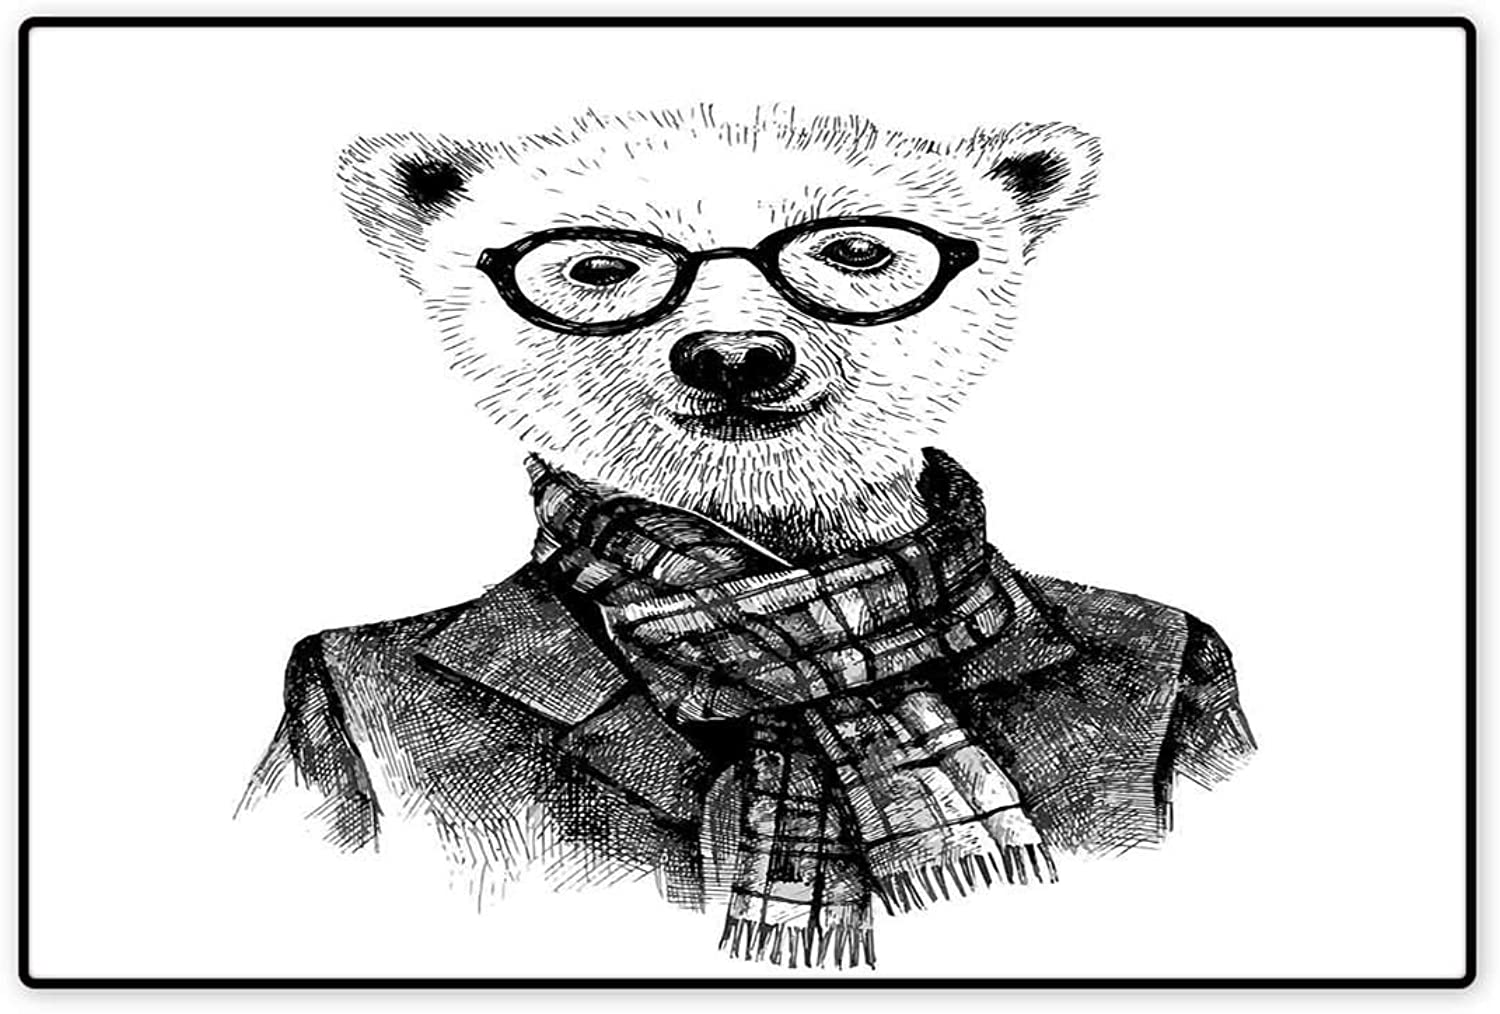 Animal Floor Mat for Kids Hand Drawn Monochrome Sketch Style Hipster Bear with Jacket Scarf Glasses Floor Mat Pattern 32 x48  Black Grey and White